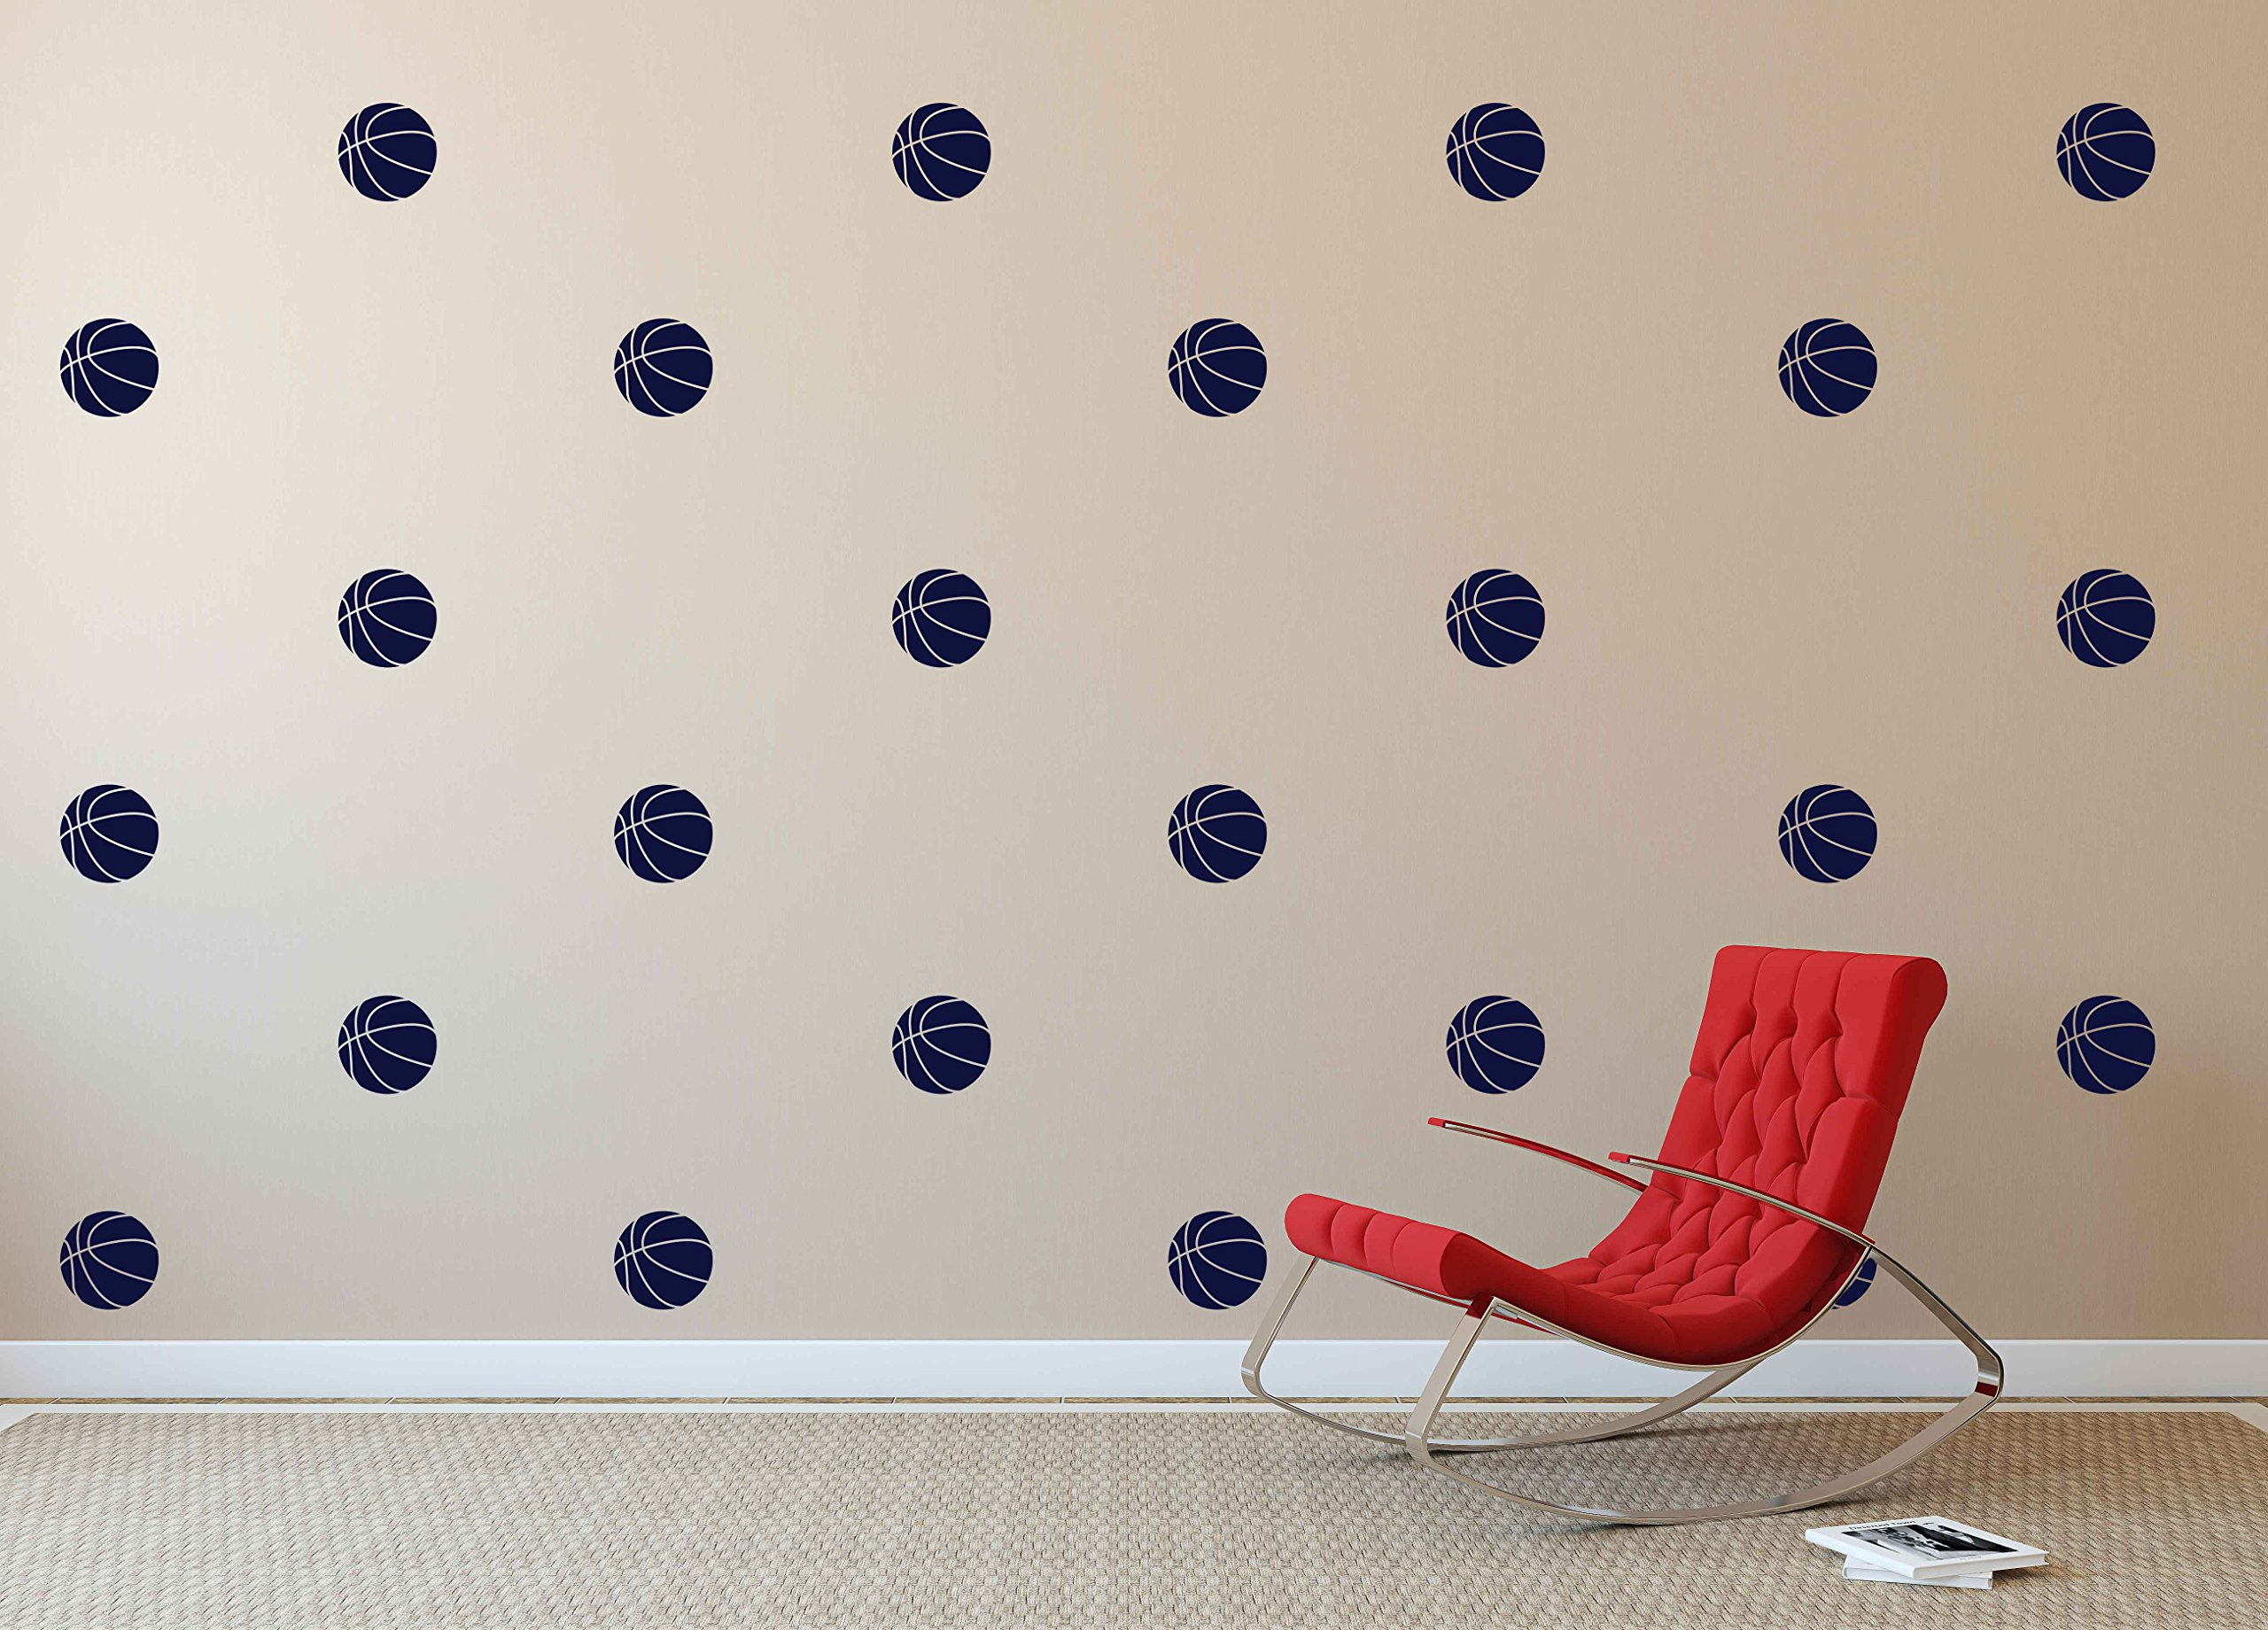 Dark Blue Basketball Pattern - Set of 25 - Sports Vinyl Wall Art Decal for Homes, Offices, Kids Rooms, Nurseries, Schools, High Schools, Colleges, Universities